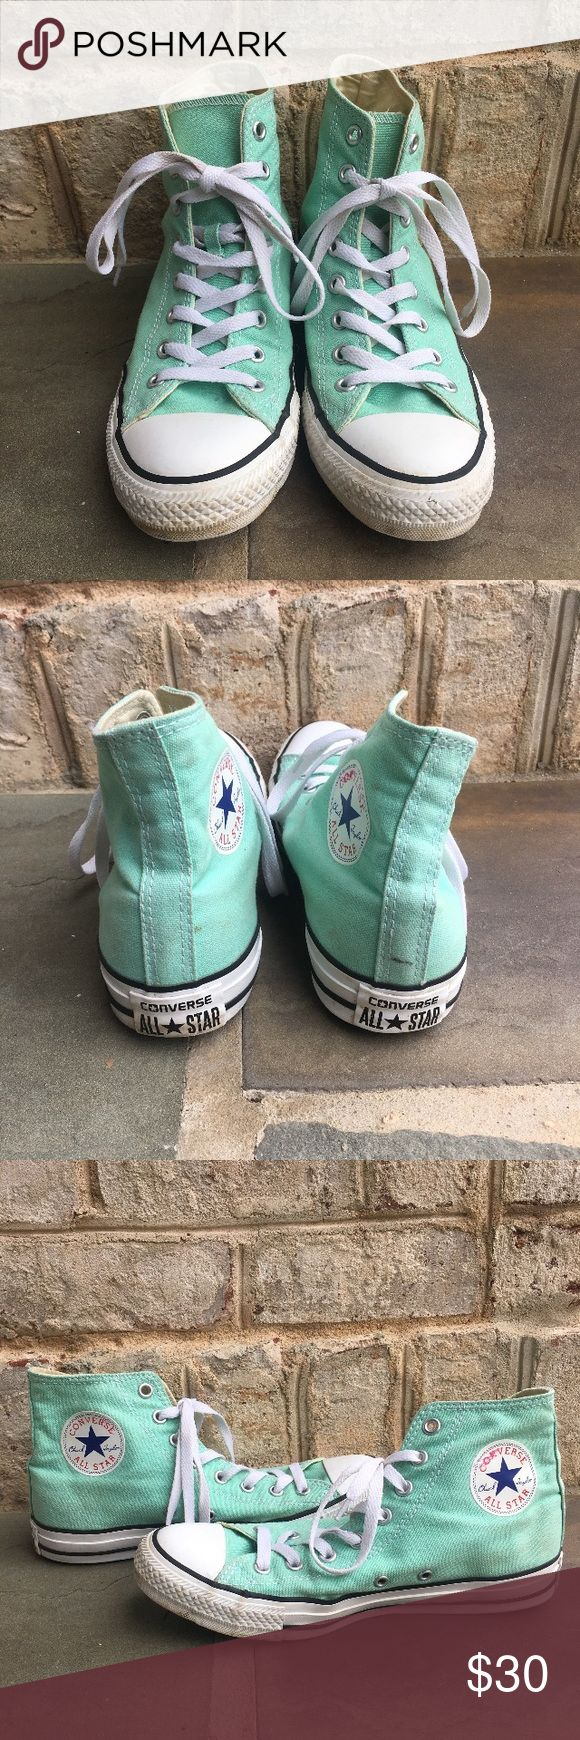 Teal Converse High Top Sneakers High Top Green Converse  ⁃Women's size: 9 ⁃Condition: Excellent Used condition, Mild signs of wear and tear, only worn a few times ⁃Tags: High Top, Green, Converse, light 📦📫Same to Next Day Shipping! ✖️Don't like the Price? Make an Offer!  ❓Have a Question? Ask!  🍁Bundle & Save! Add item(s) to a bundle for a private offer! 🍁 Converse Shoes Sneakers